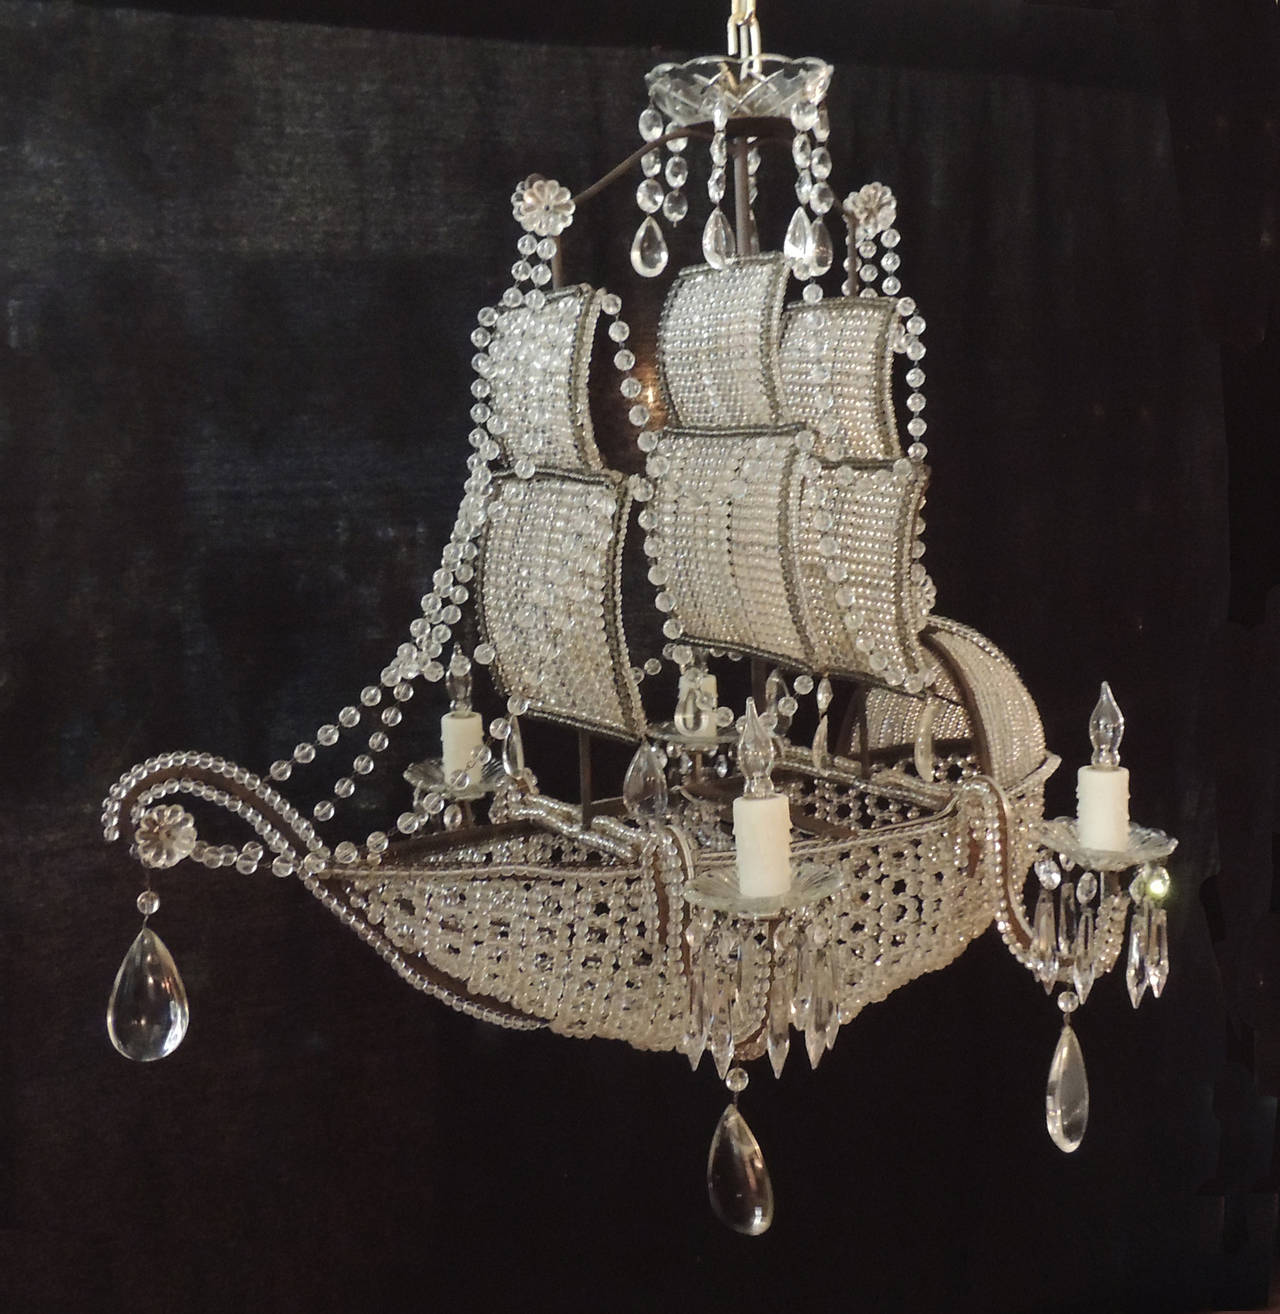 Early 1900s venetian crystal iron and tole ship chandelier at 1stdibs this chandelier a ming dynasty junk ship design was created in the early half aloadofball Images